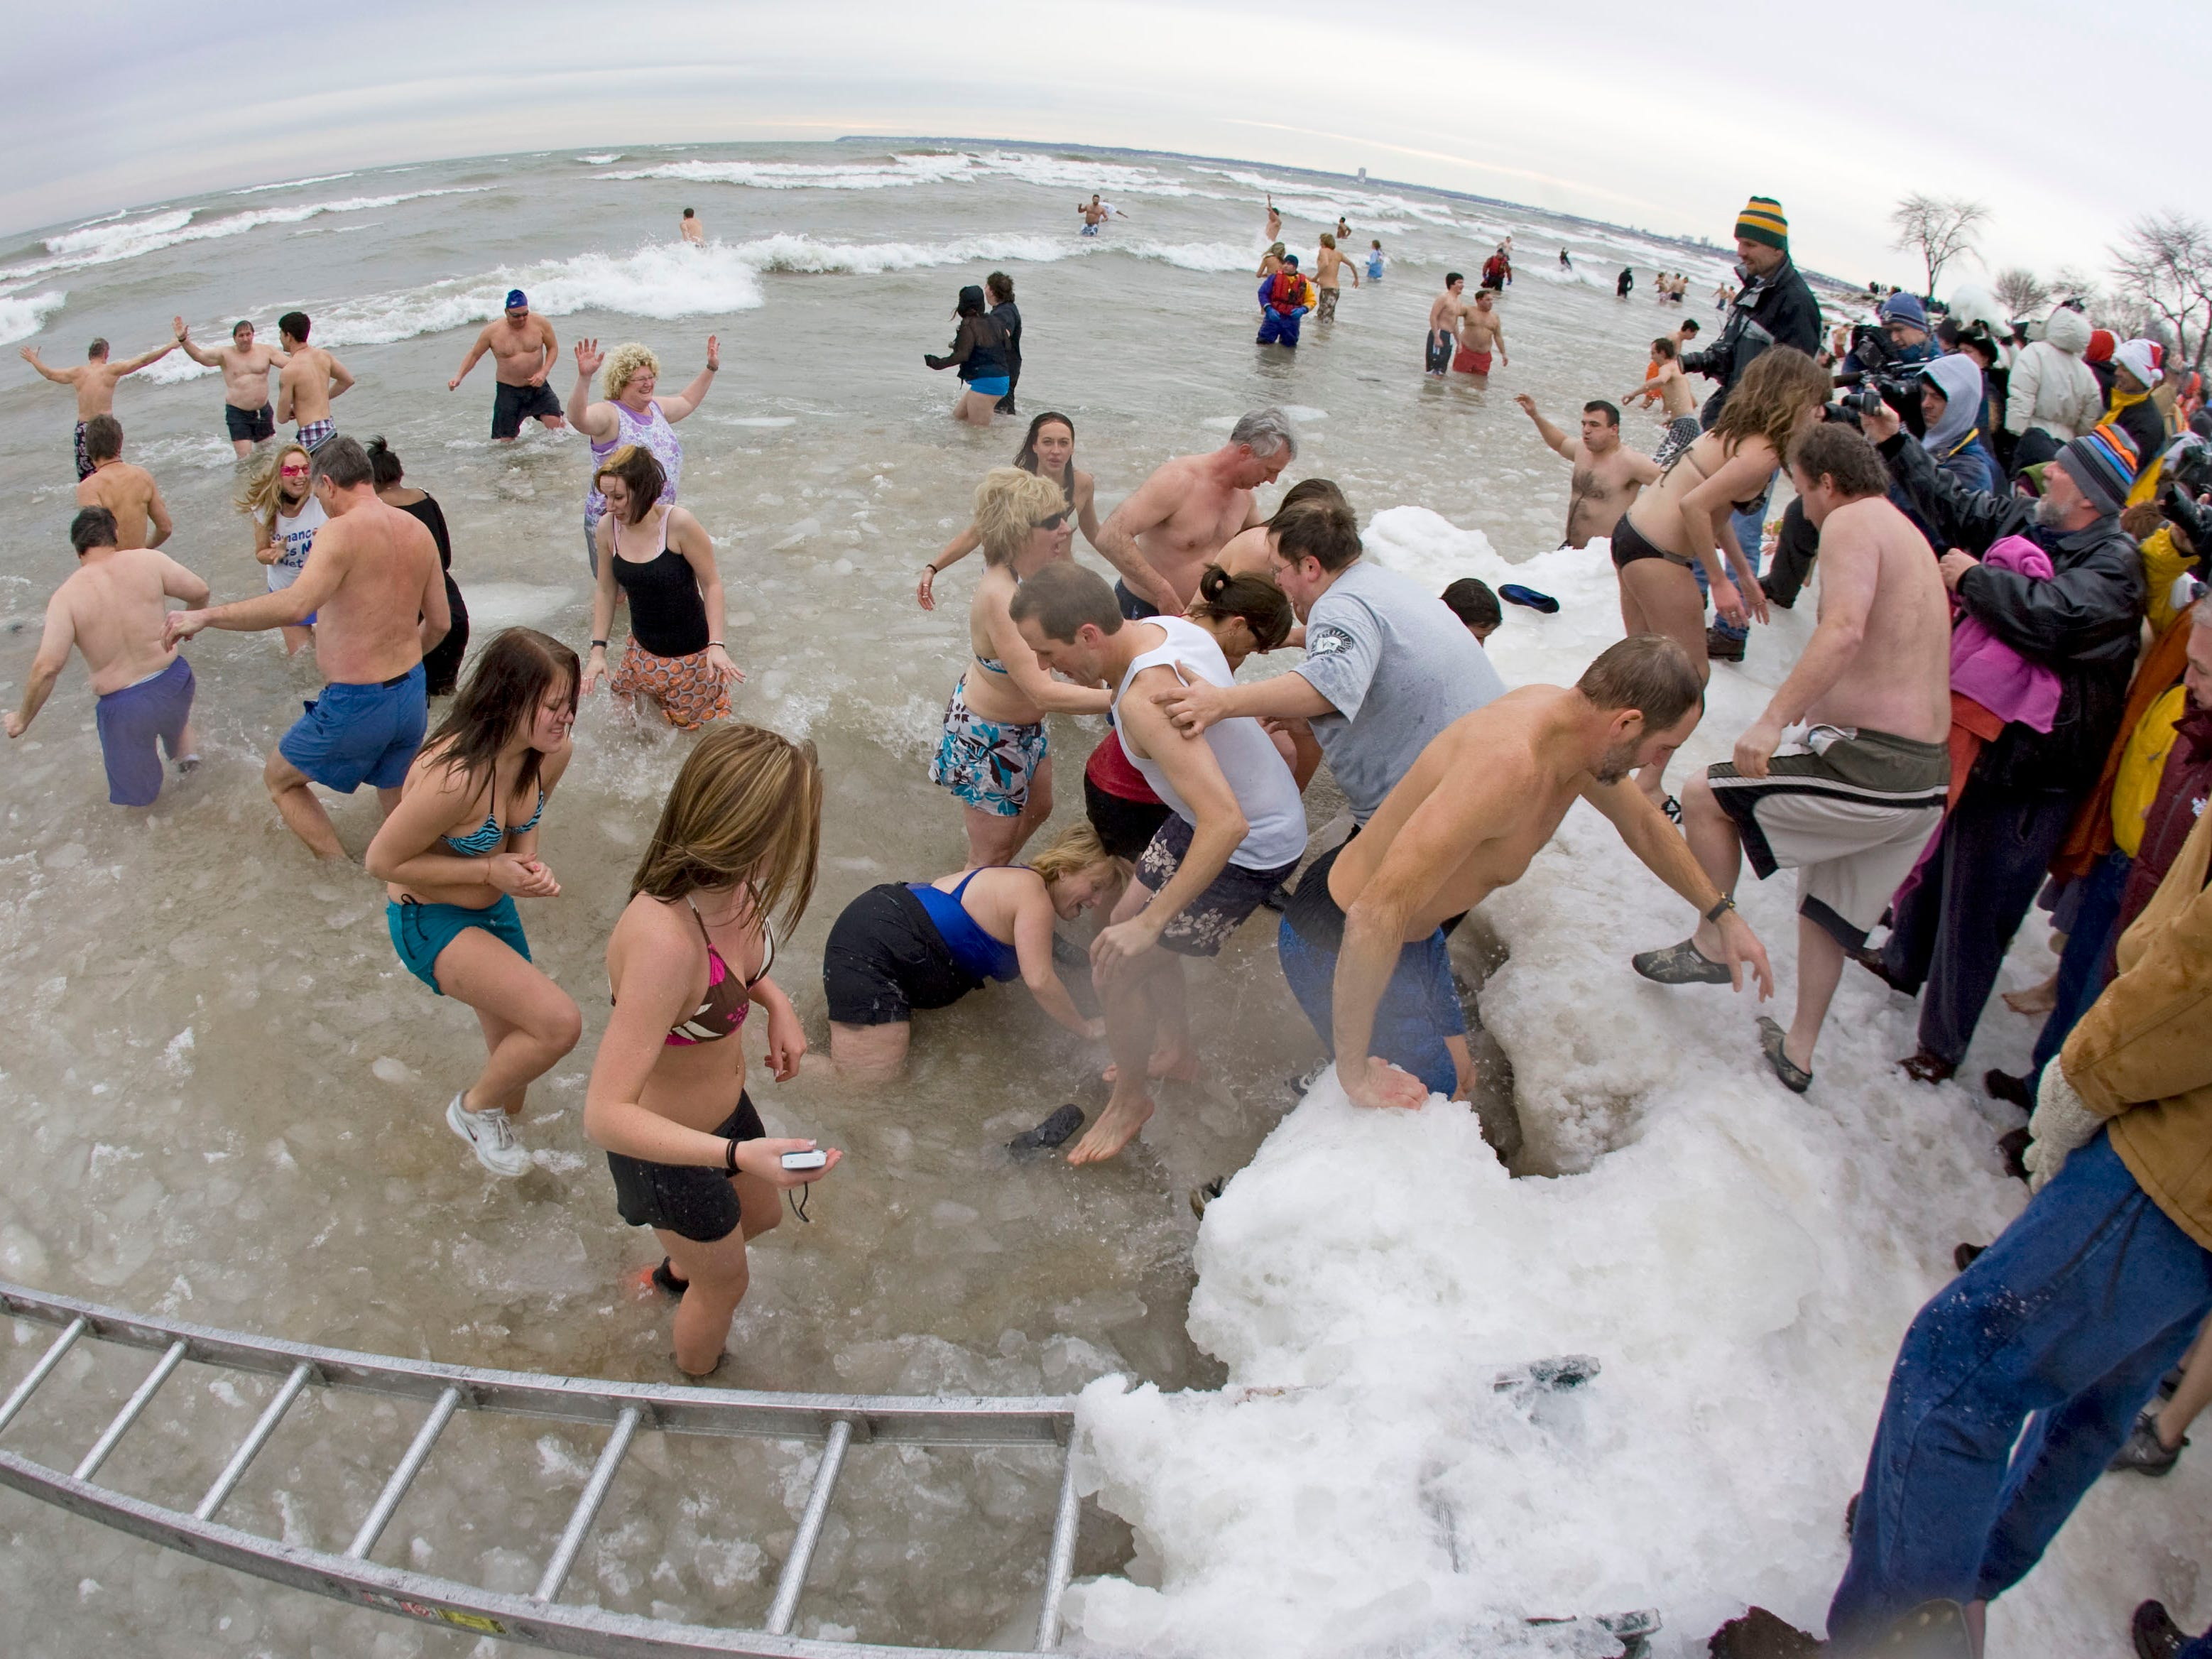 Polar Bears pour into the icy water at Bradford Beach for the 2009 Polar Bear Plunge on New Year's Day.